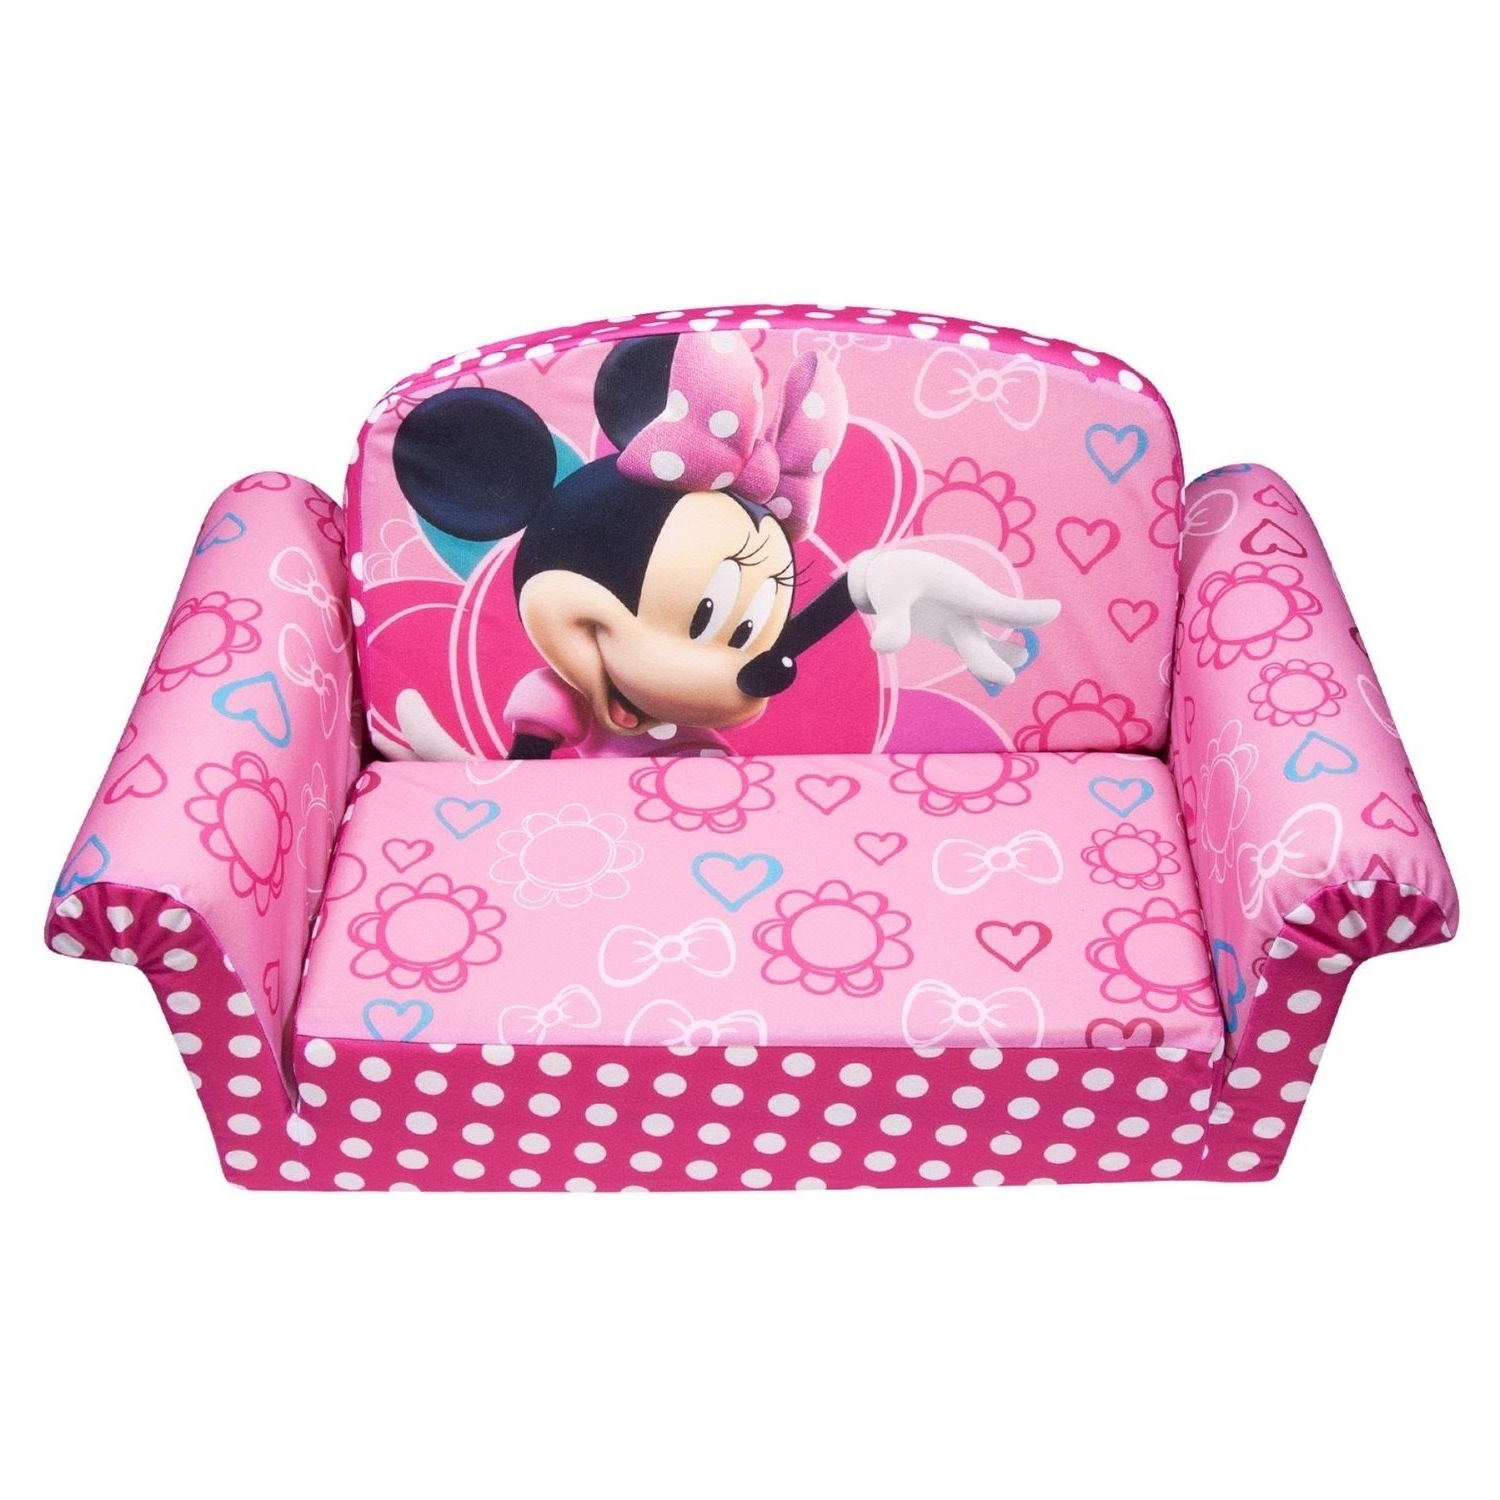 Flip Out Sofas Regarding Latest Review: Marshmallow Children's Furniture – 2 In 1 Flip Open Sofa (View 16 of 20)